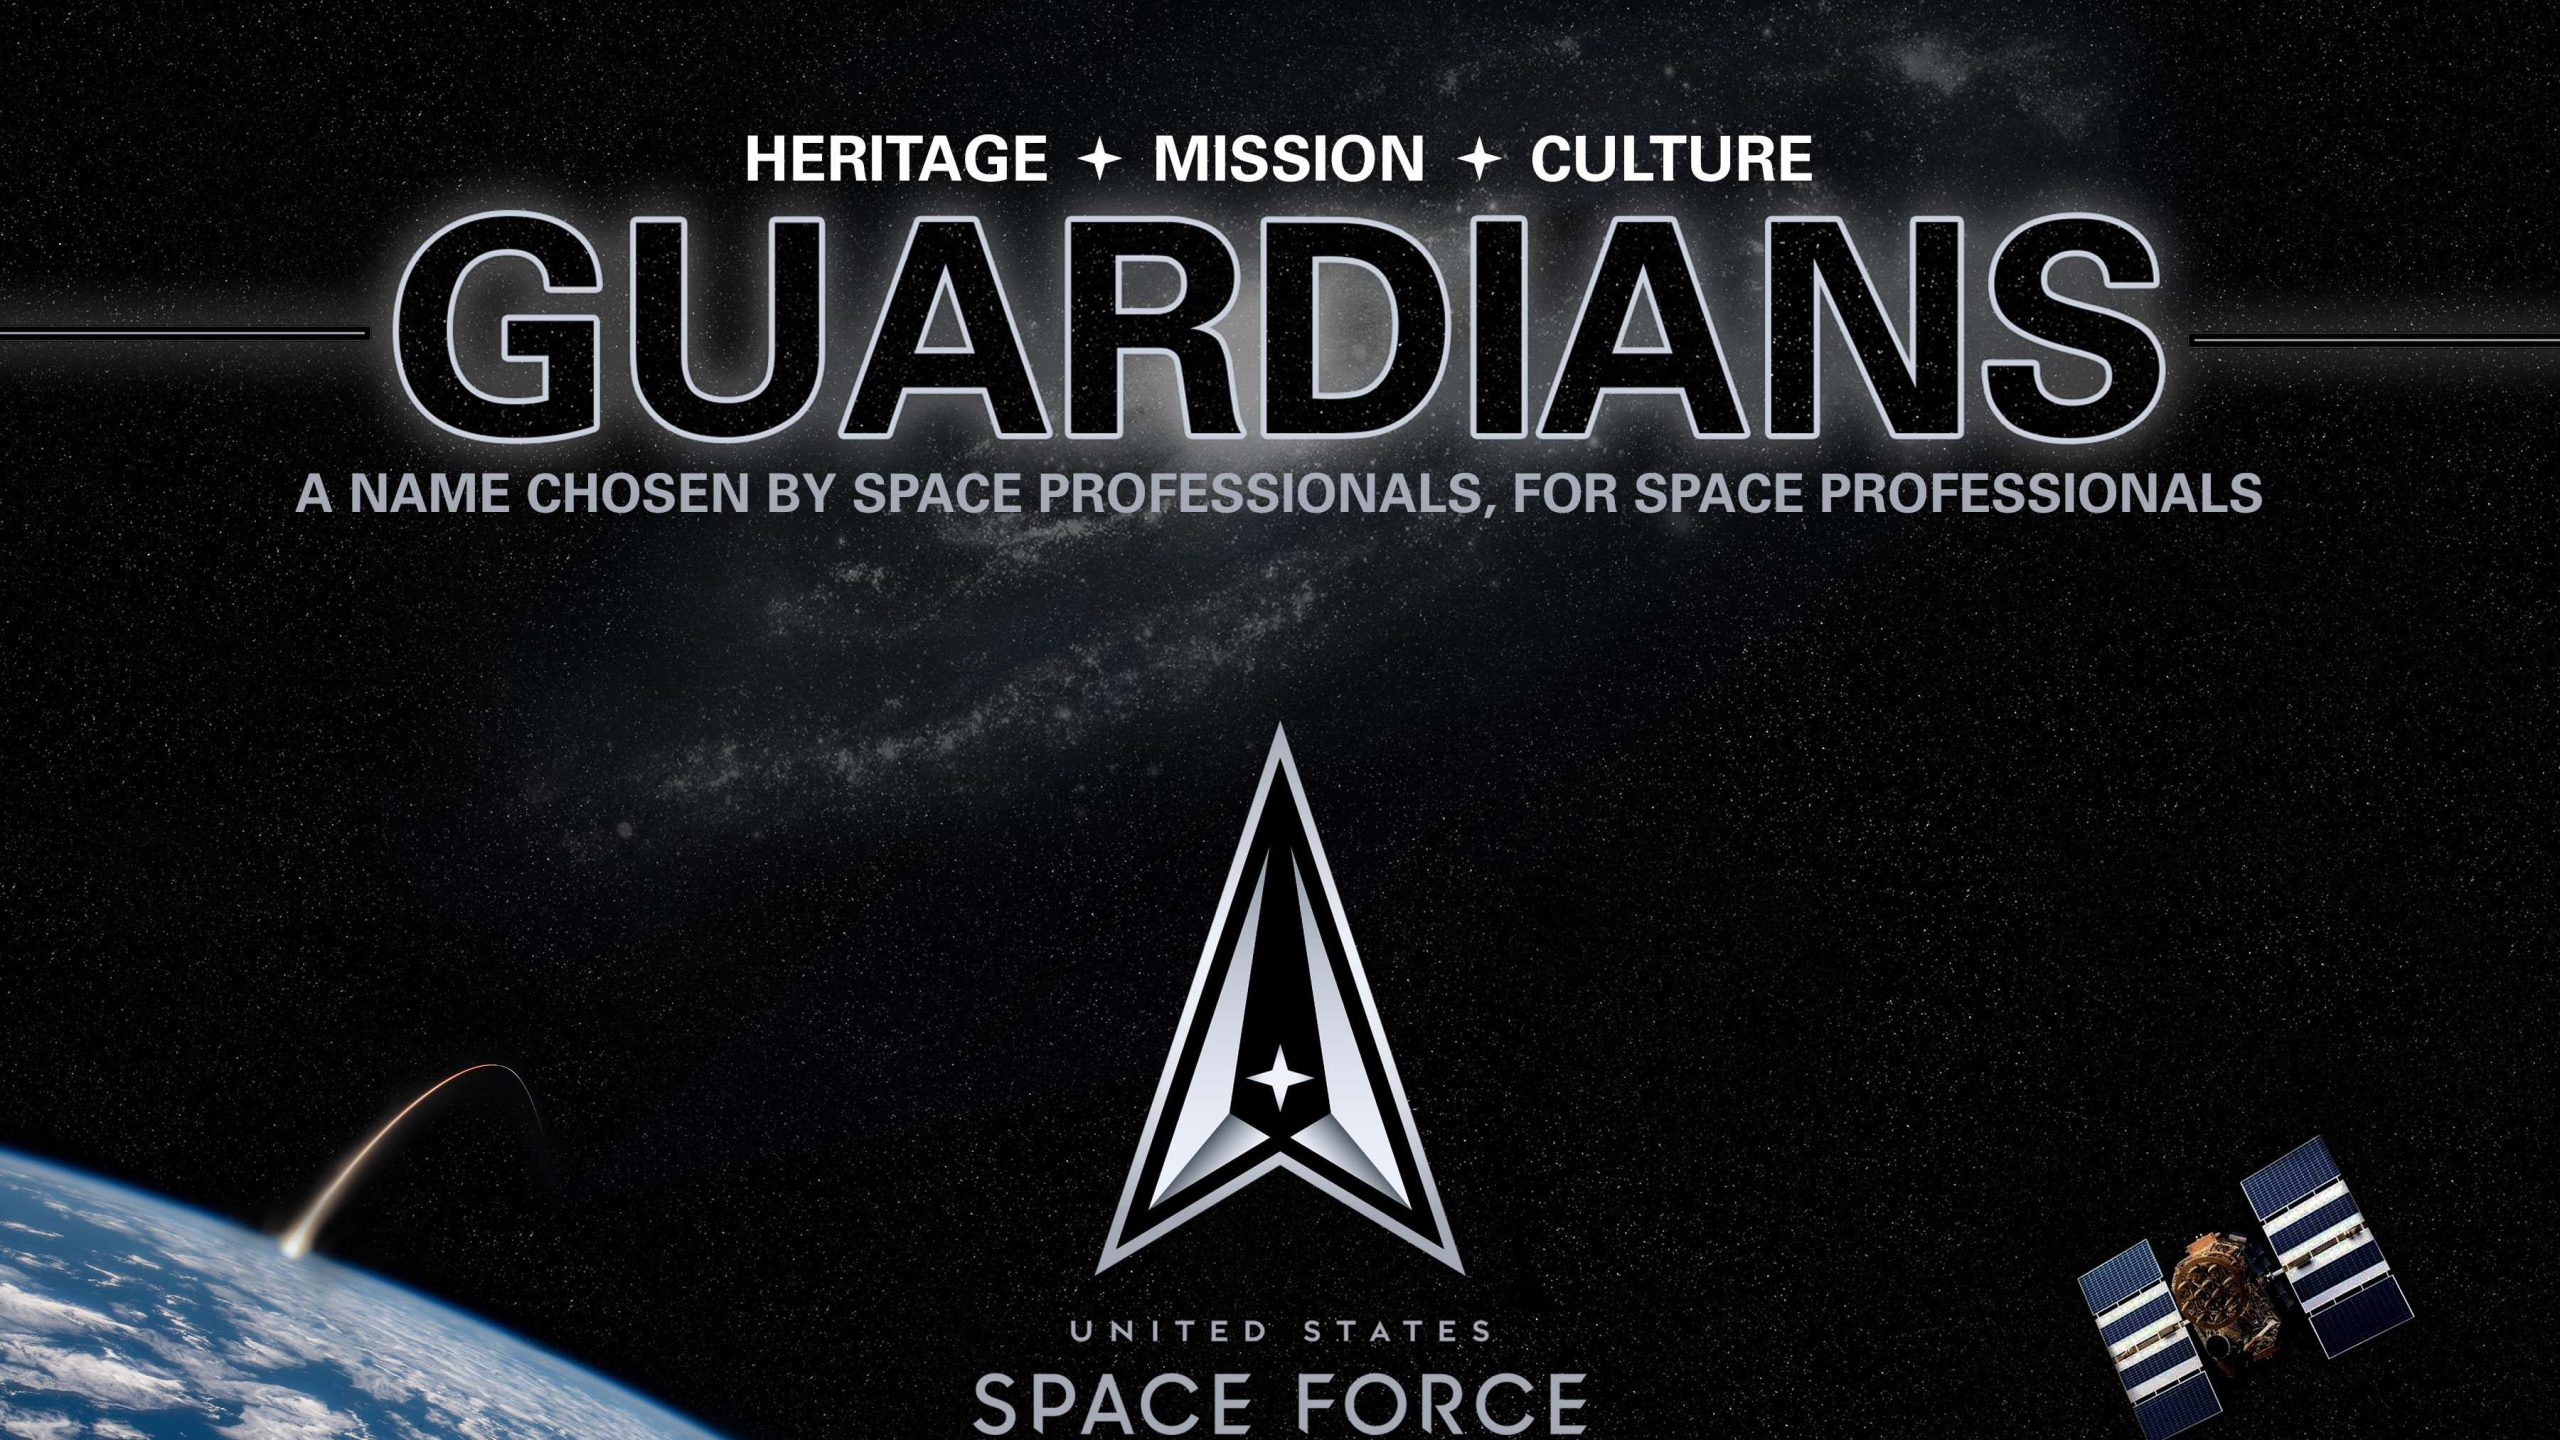 The U.S. Space Force tweeted an image with the new name of its space professionals, on Dec. 18, 2020.